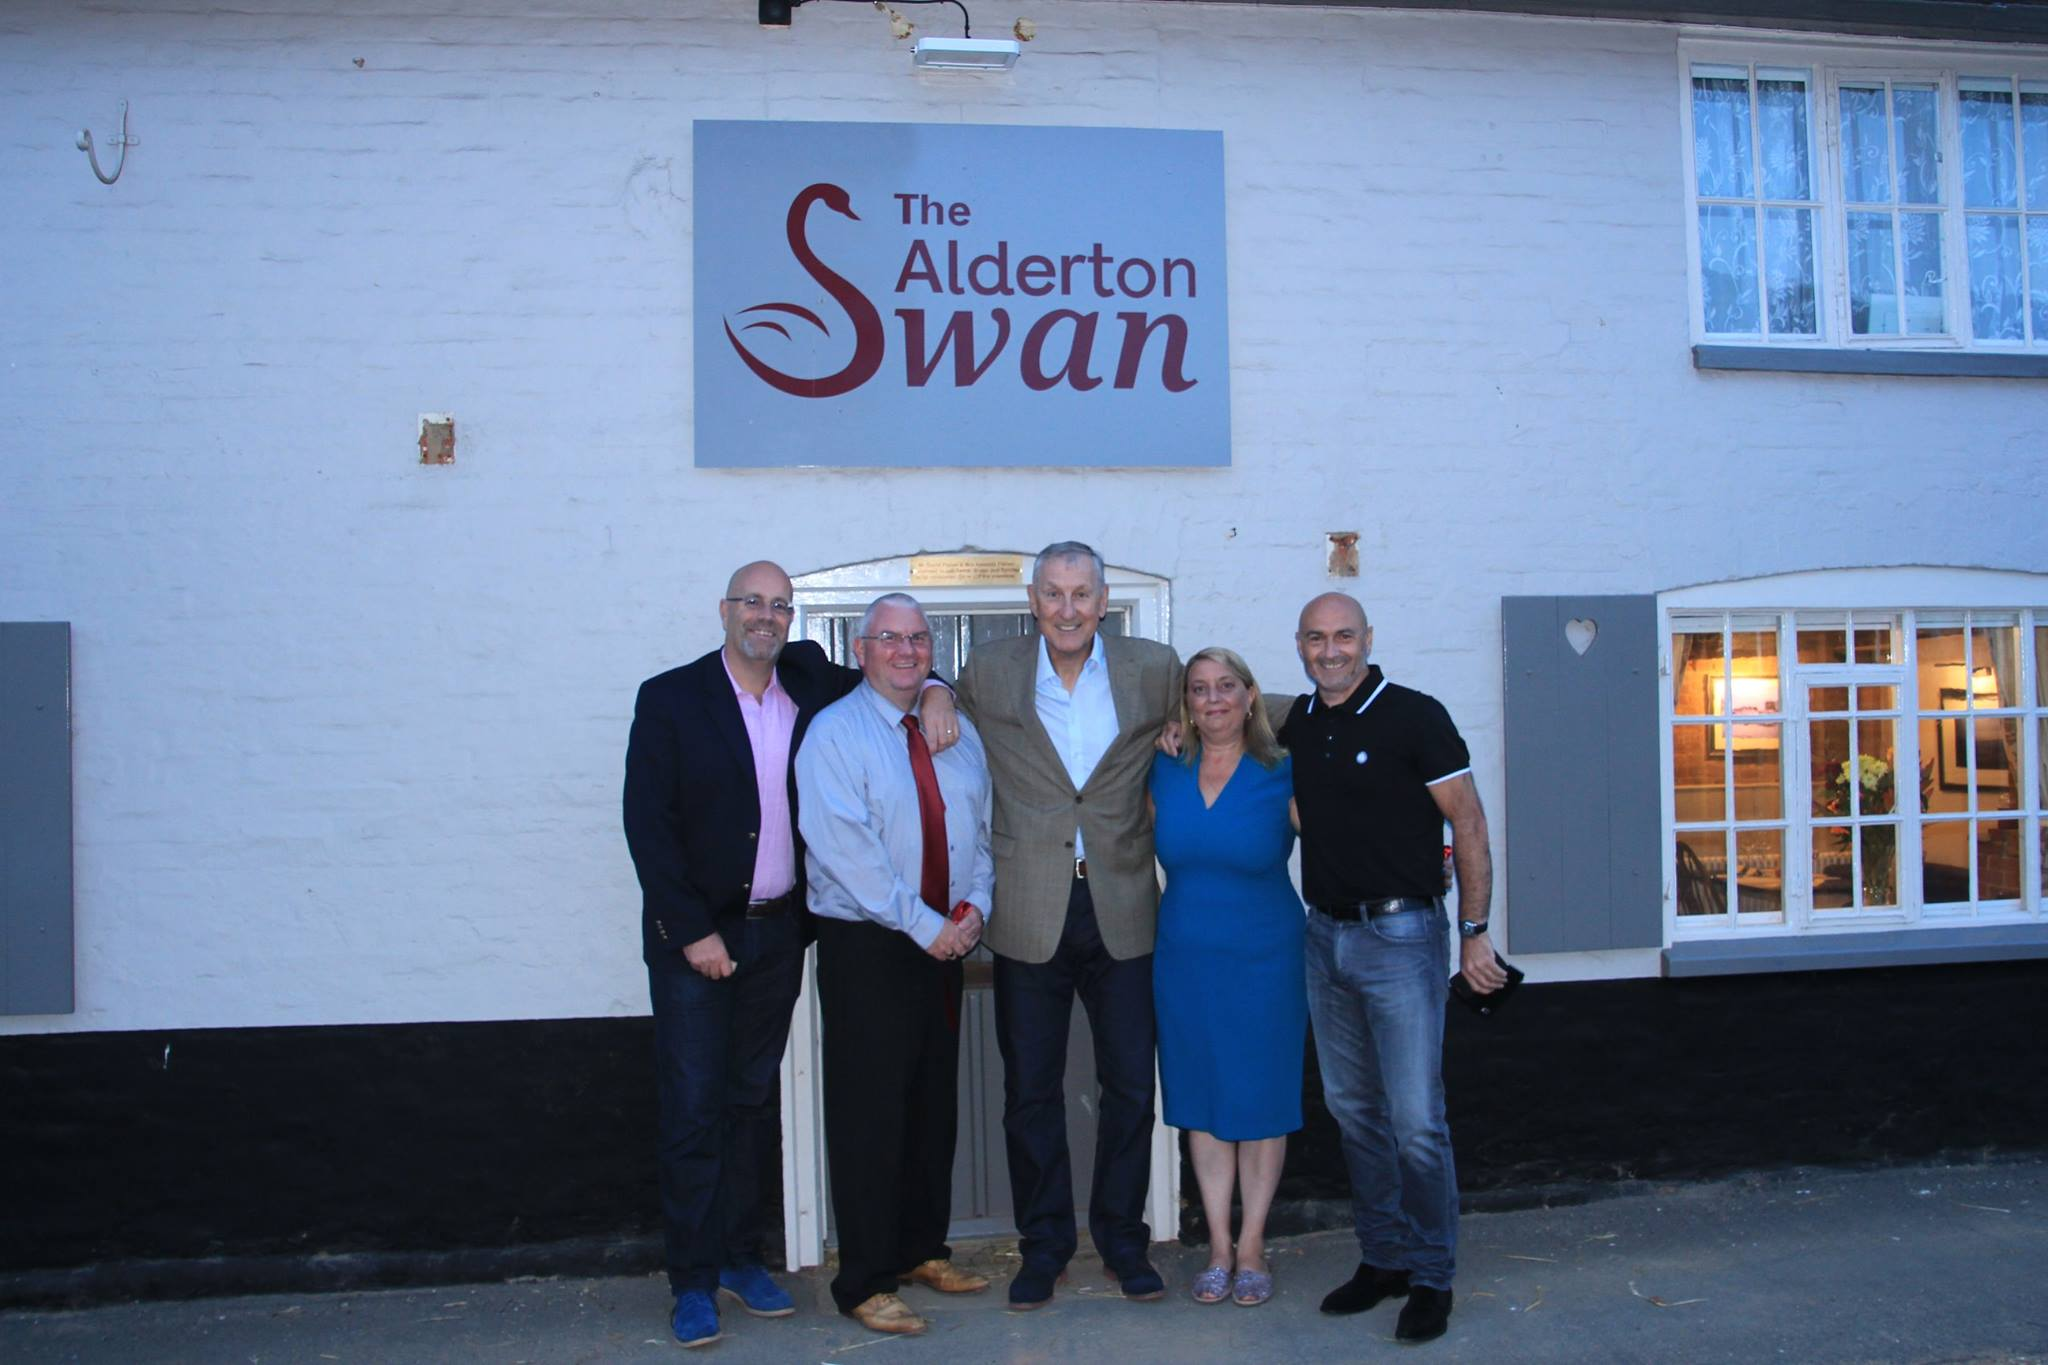 Reopening of The Swan - Harrison and Wildon